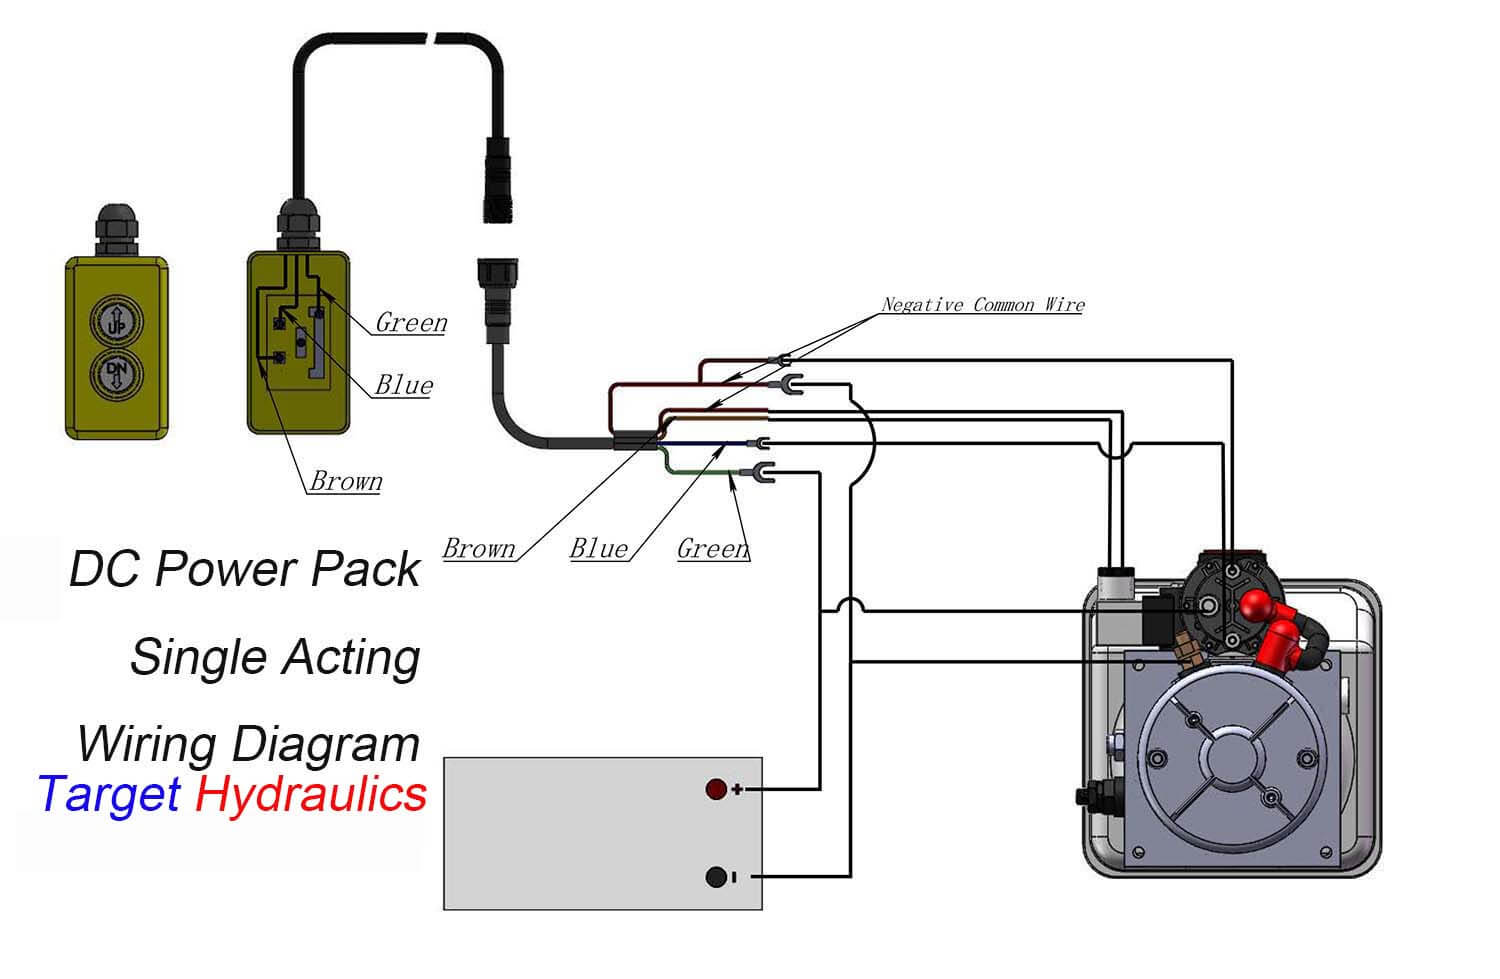 How to Wire_DC Motor Single Acting Power Pack how to wire hydraulic power pack,power unit diagram design 110 Power Cord Diagram at edmiracle.co